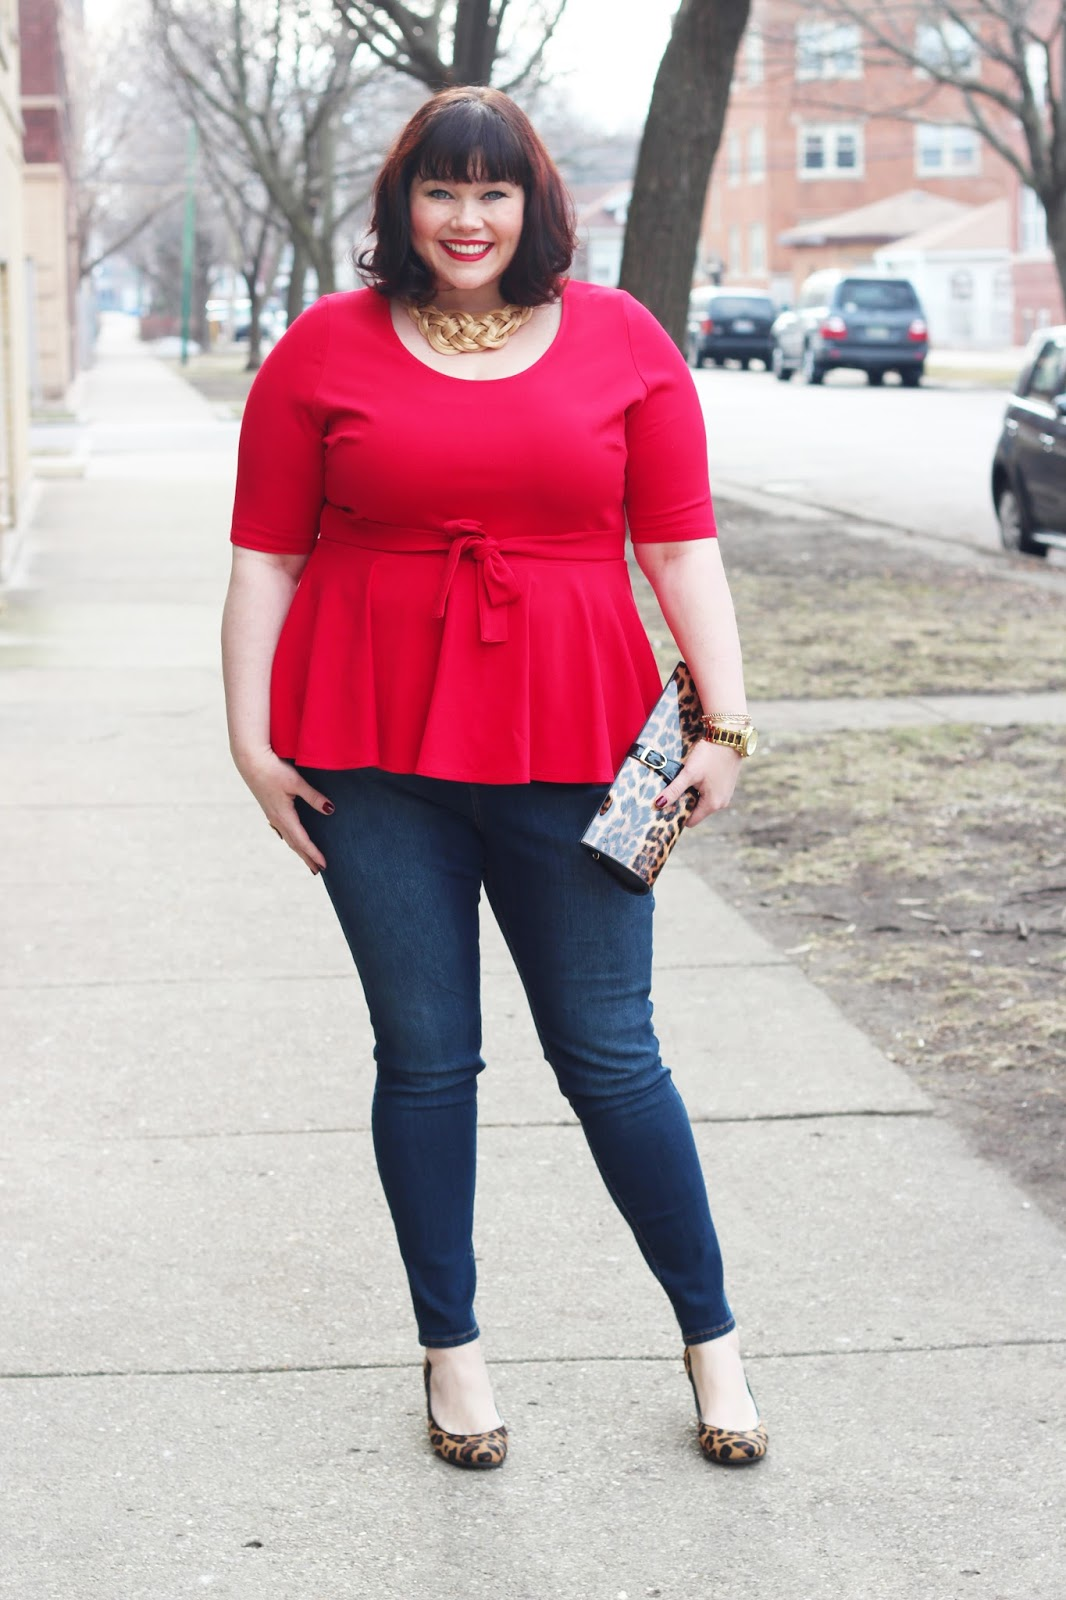 Plus size red peplum top and skinny jeans from Fashion to Figure on Plus Size blogger Amber from Style Plus Curves